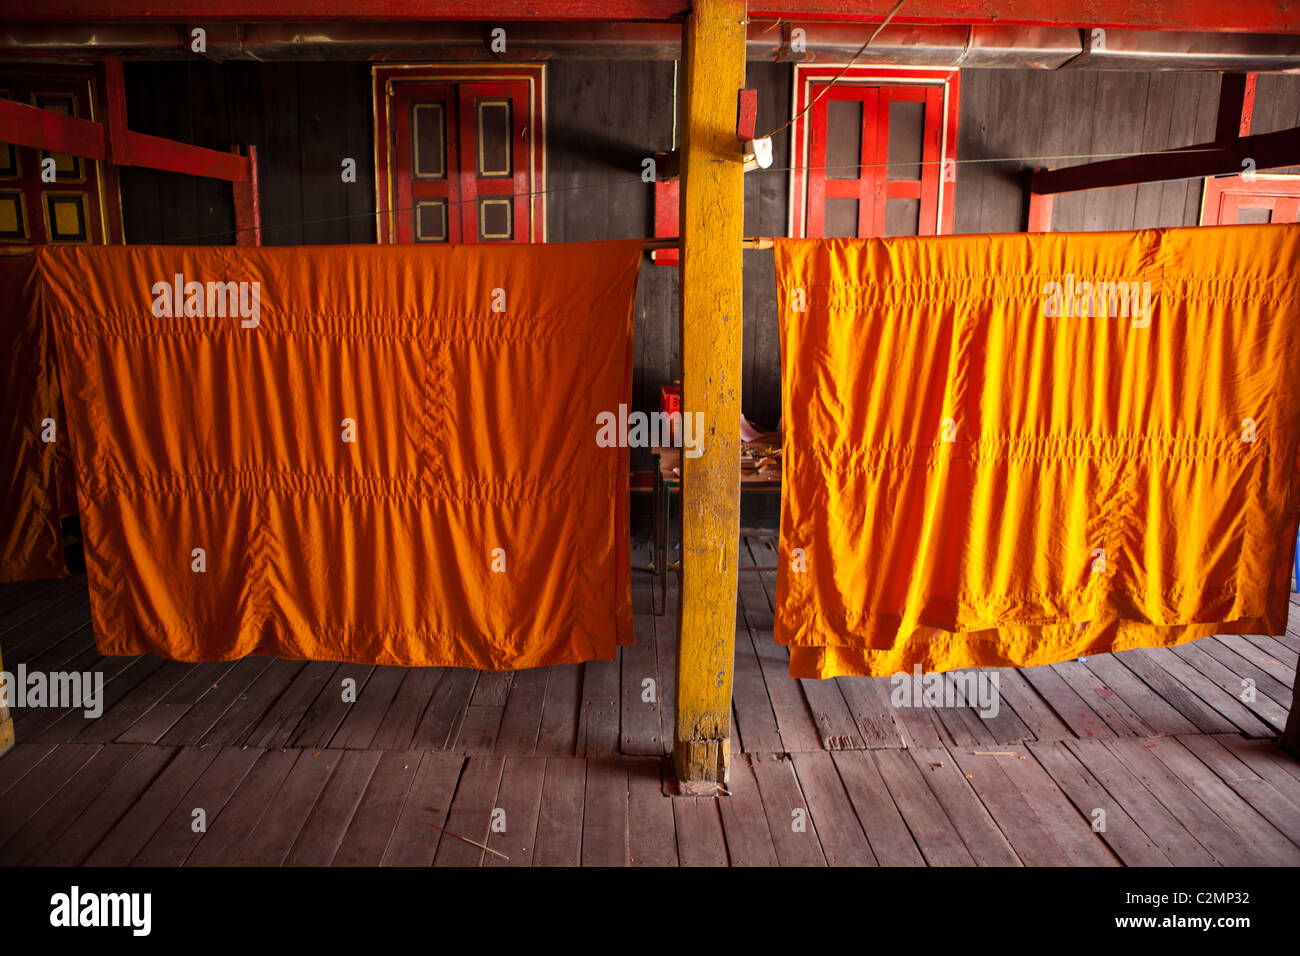 Dry on laundry string Buddhist monk's robe in Wat Si Rong Mueang, Lampang, Thailand - Stock Image